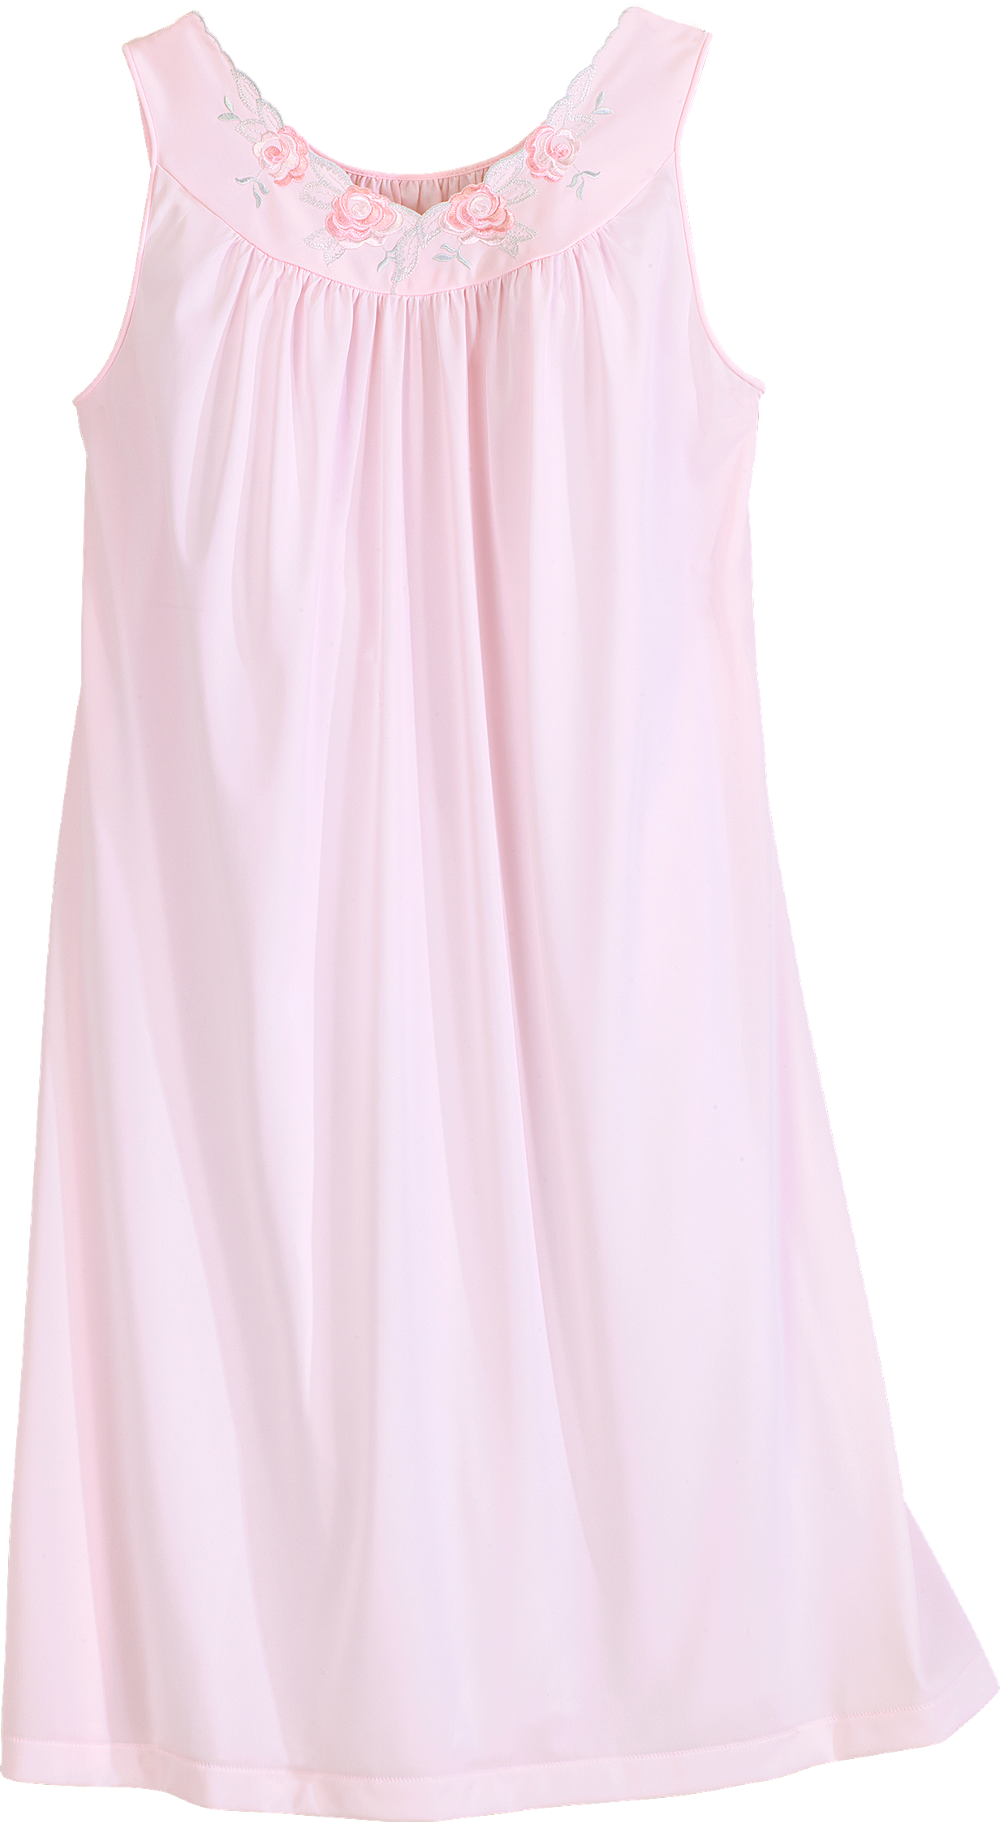 graphic free download Shadowline Petals Waltz Length Sleeveless Nightgown